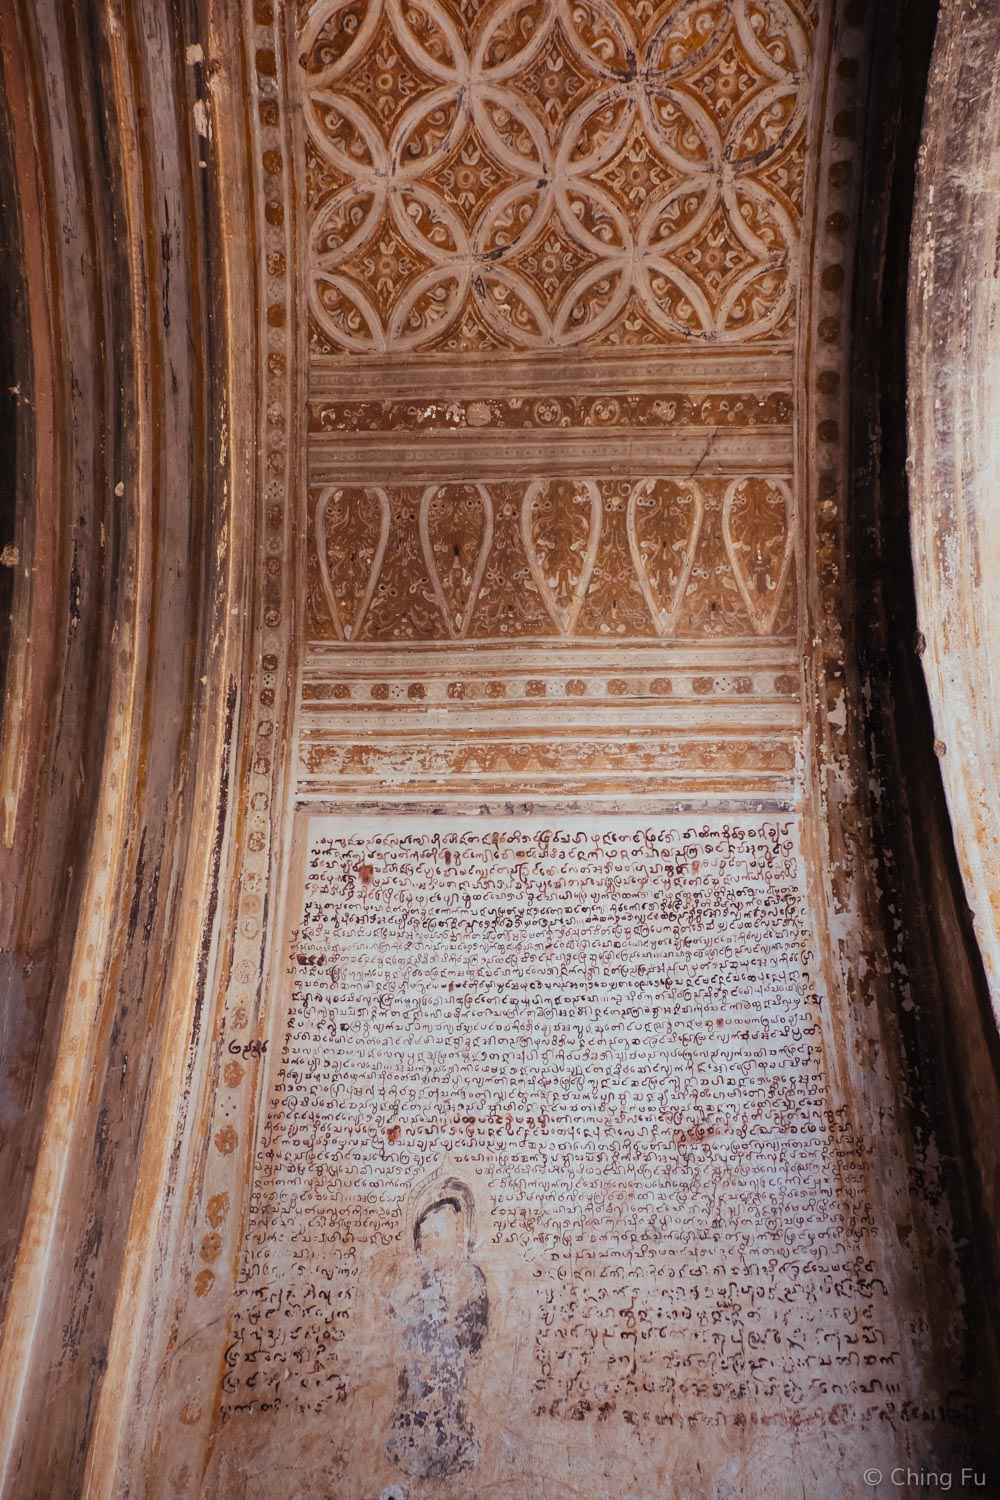 While other frescos covered all the temple walls from ceiling to floor.